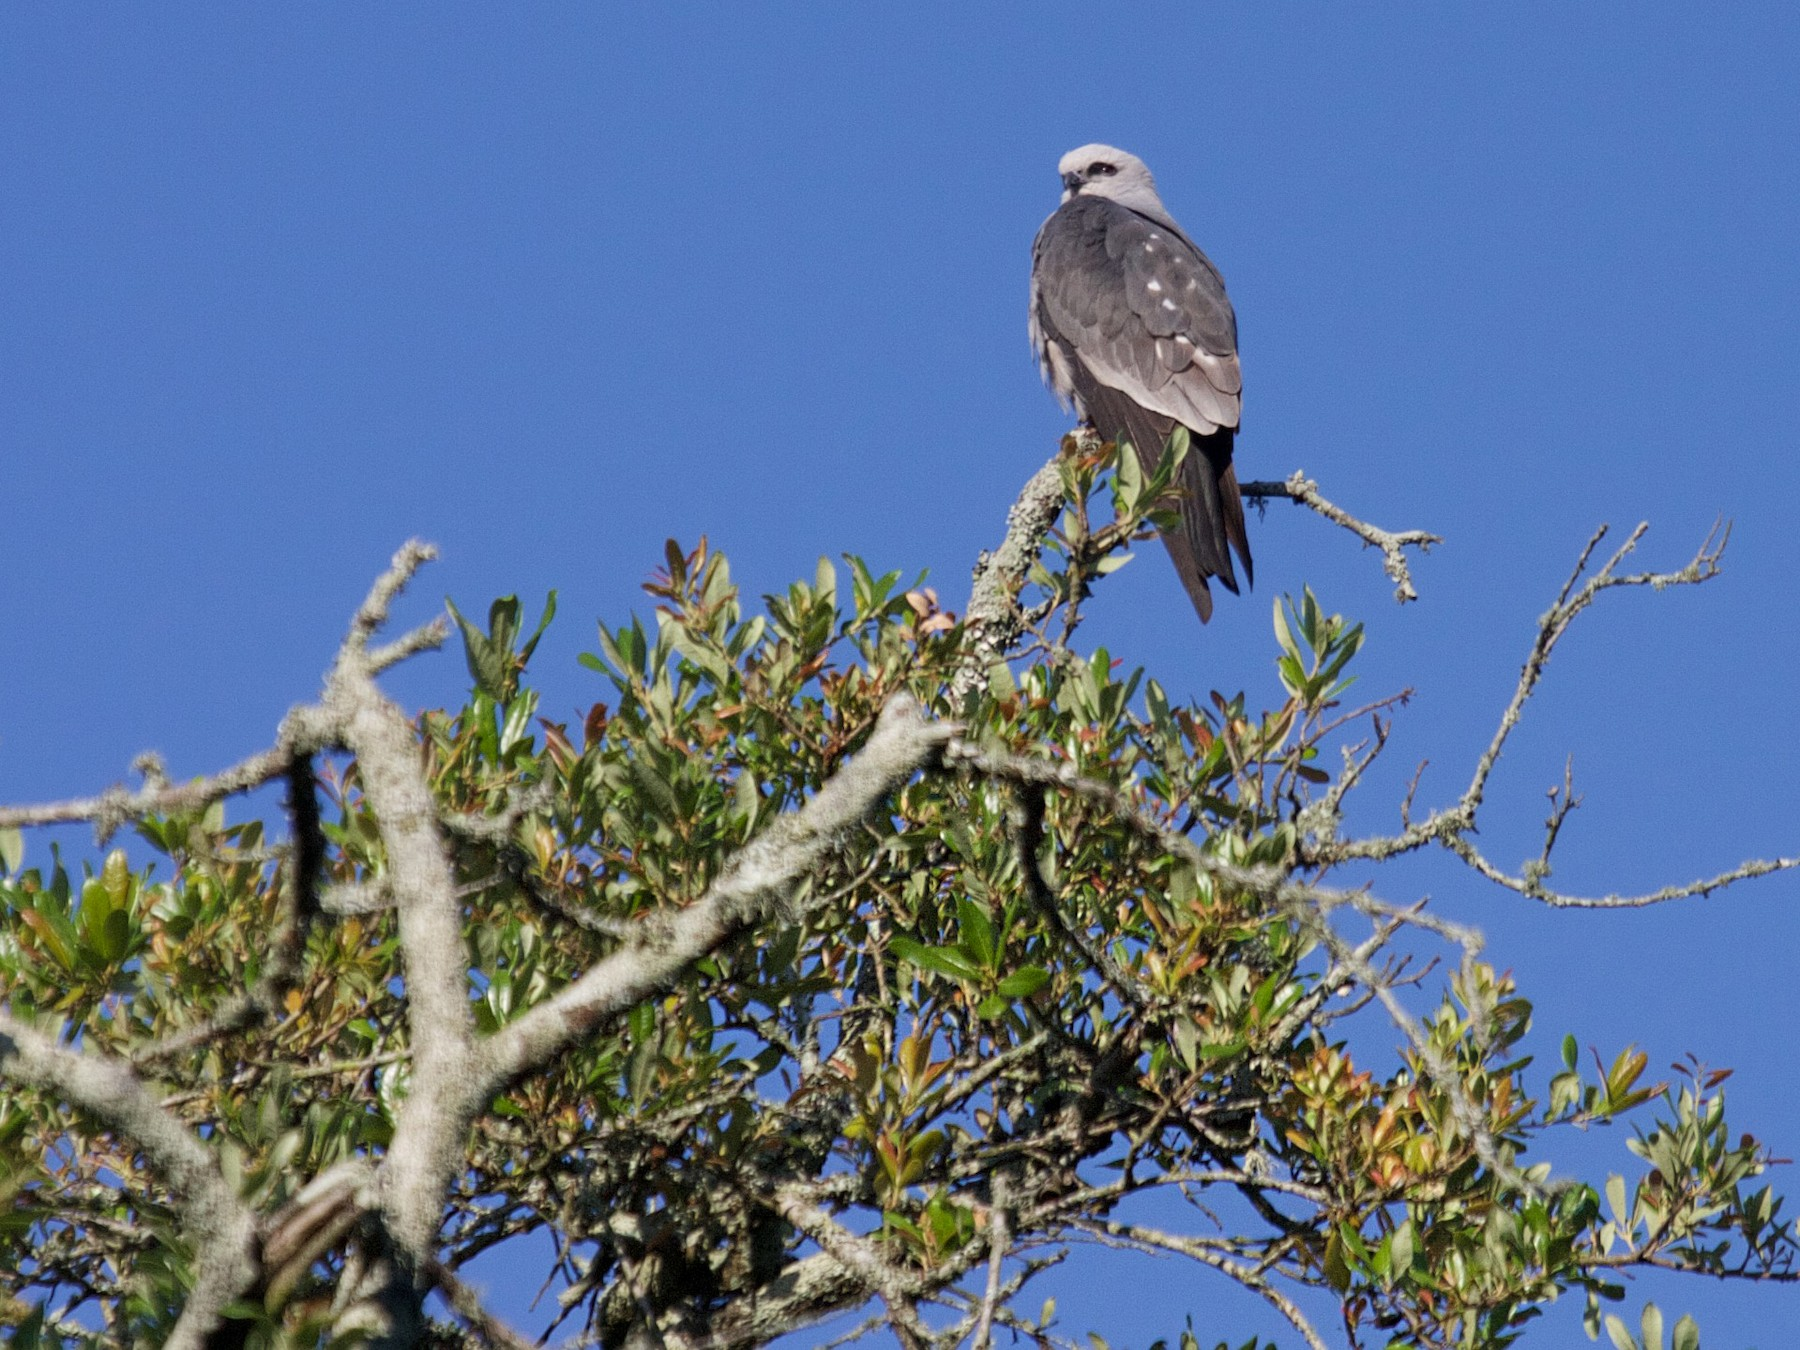 Mississippi Kite - Matt Brady